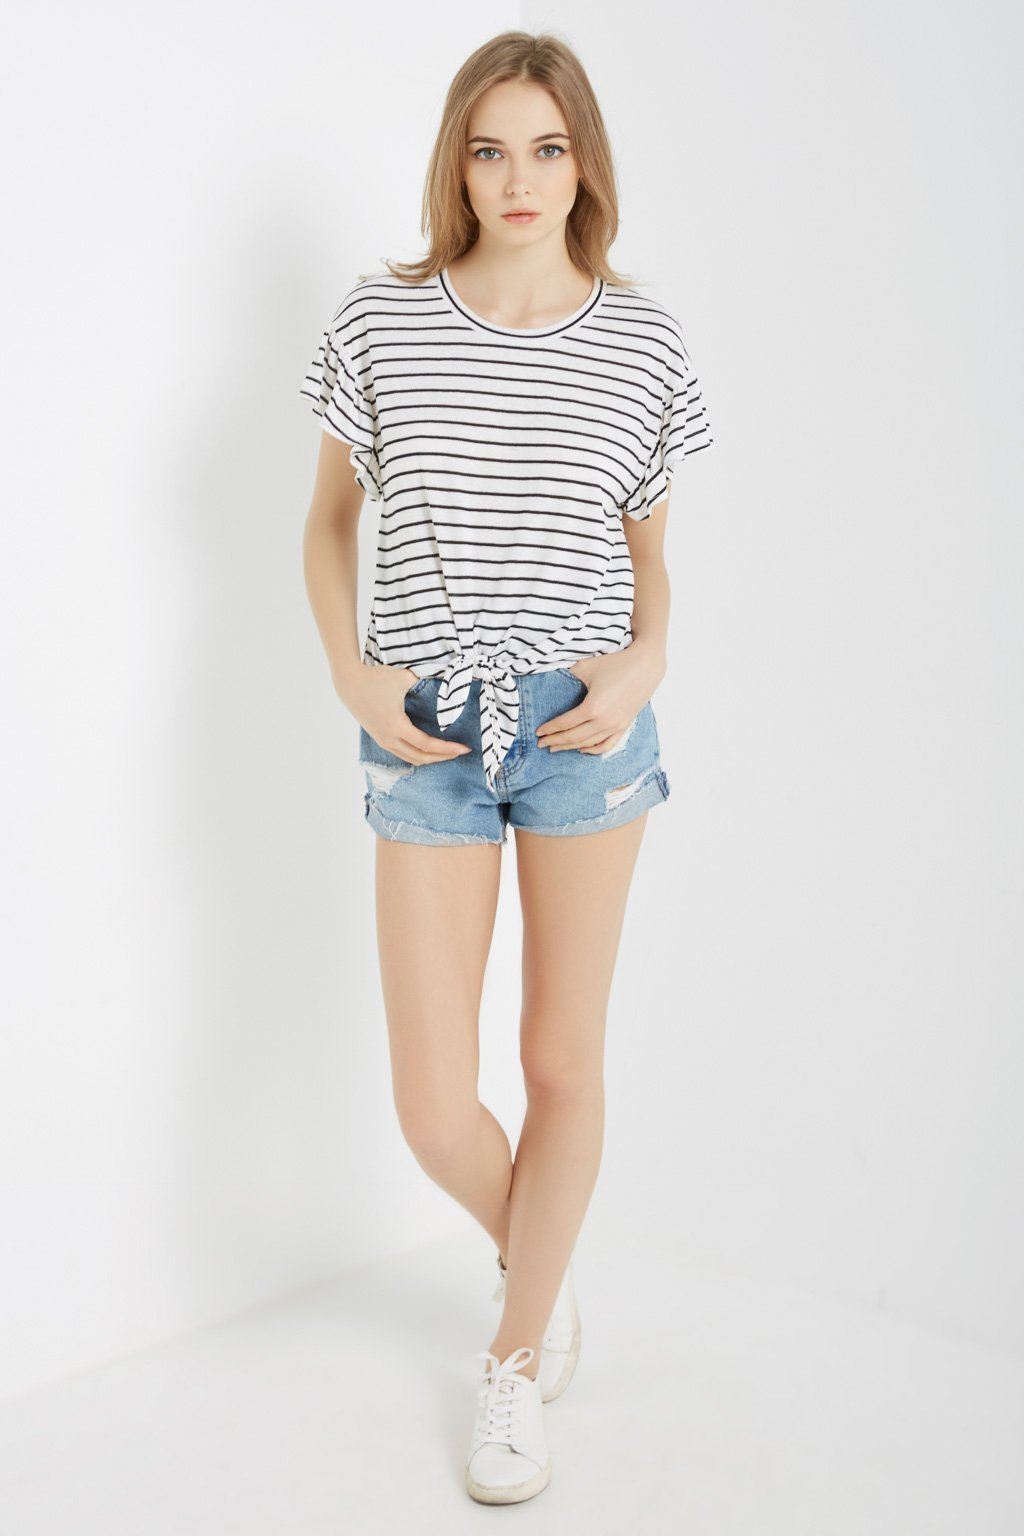 Poshsquare Tops Striped Tie-Front Tee